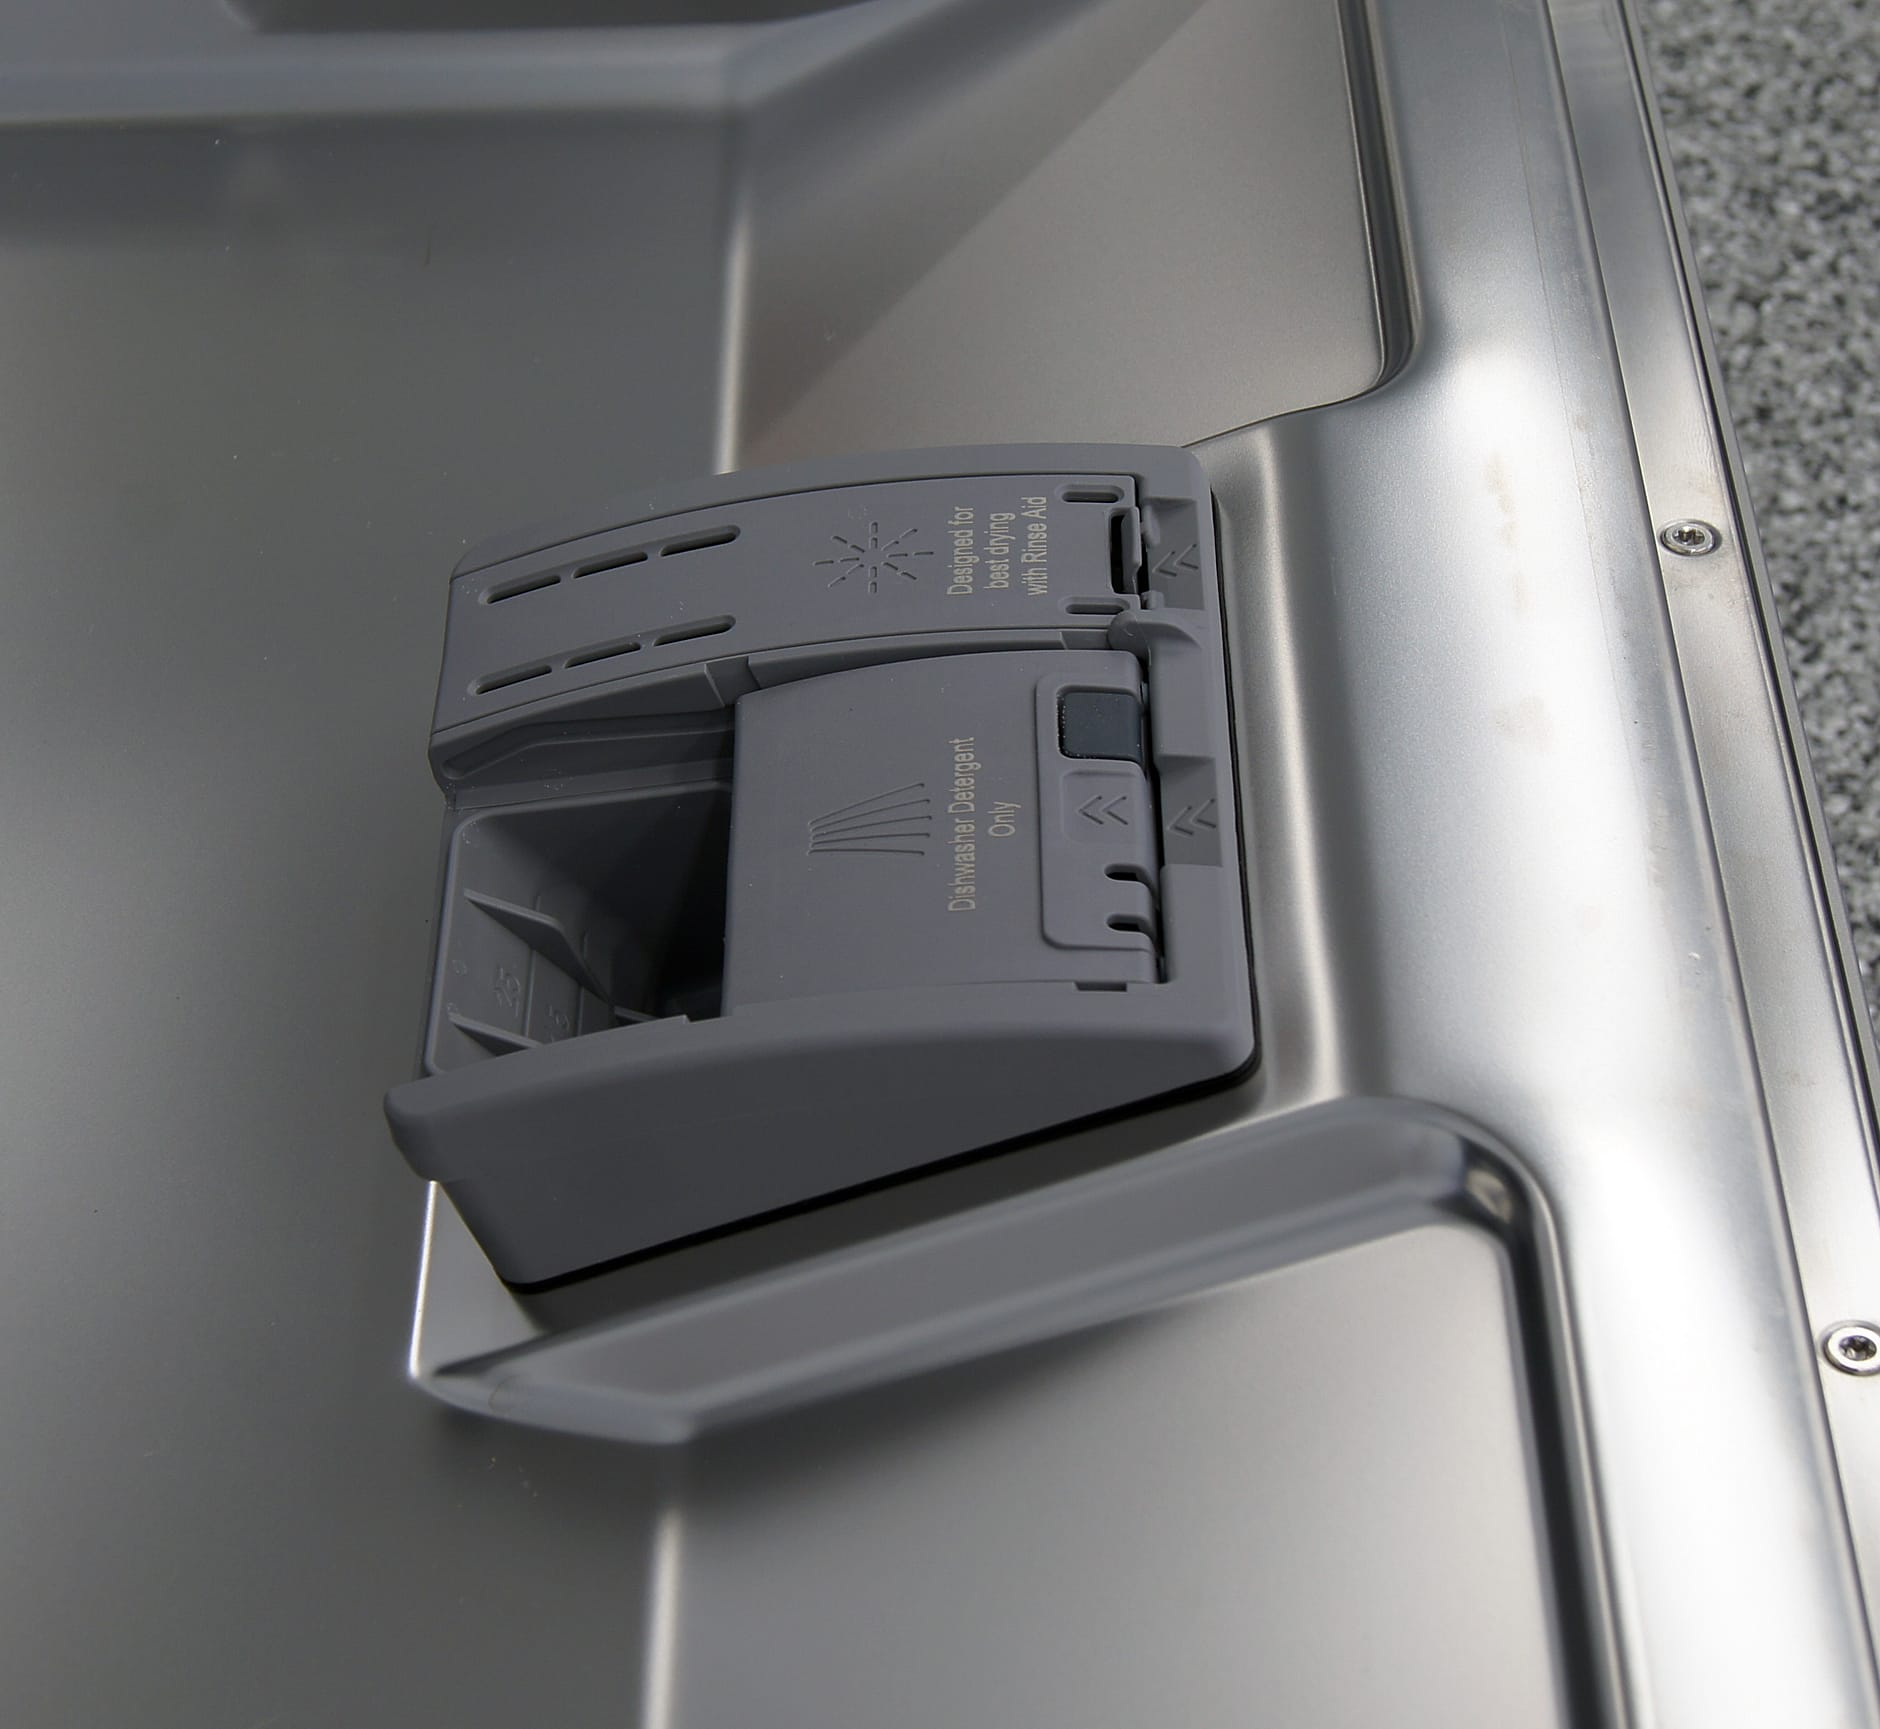 Bosch SHX4AT75UC detergent and rinse aid dispenser